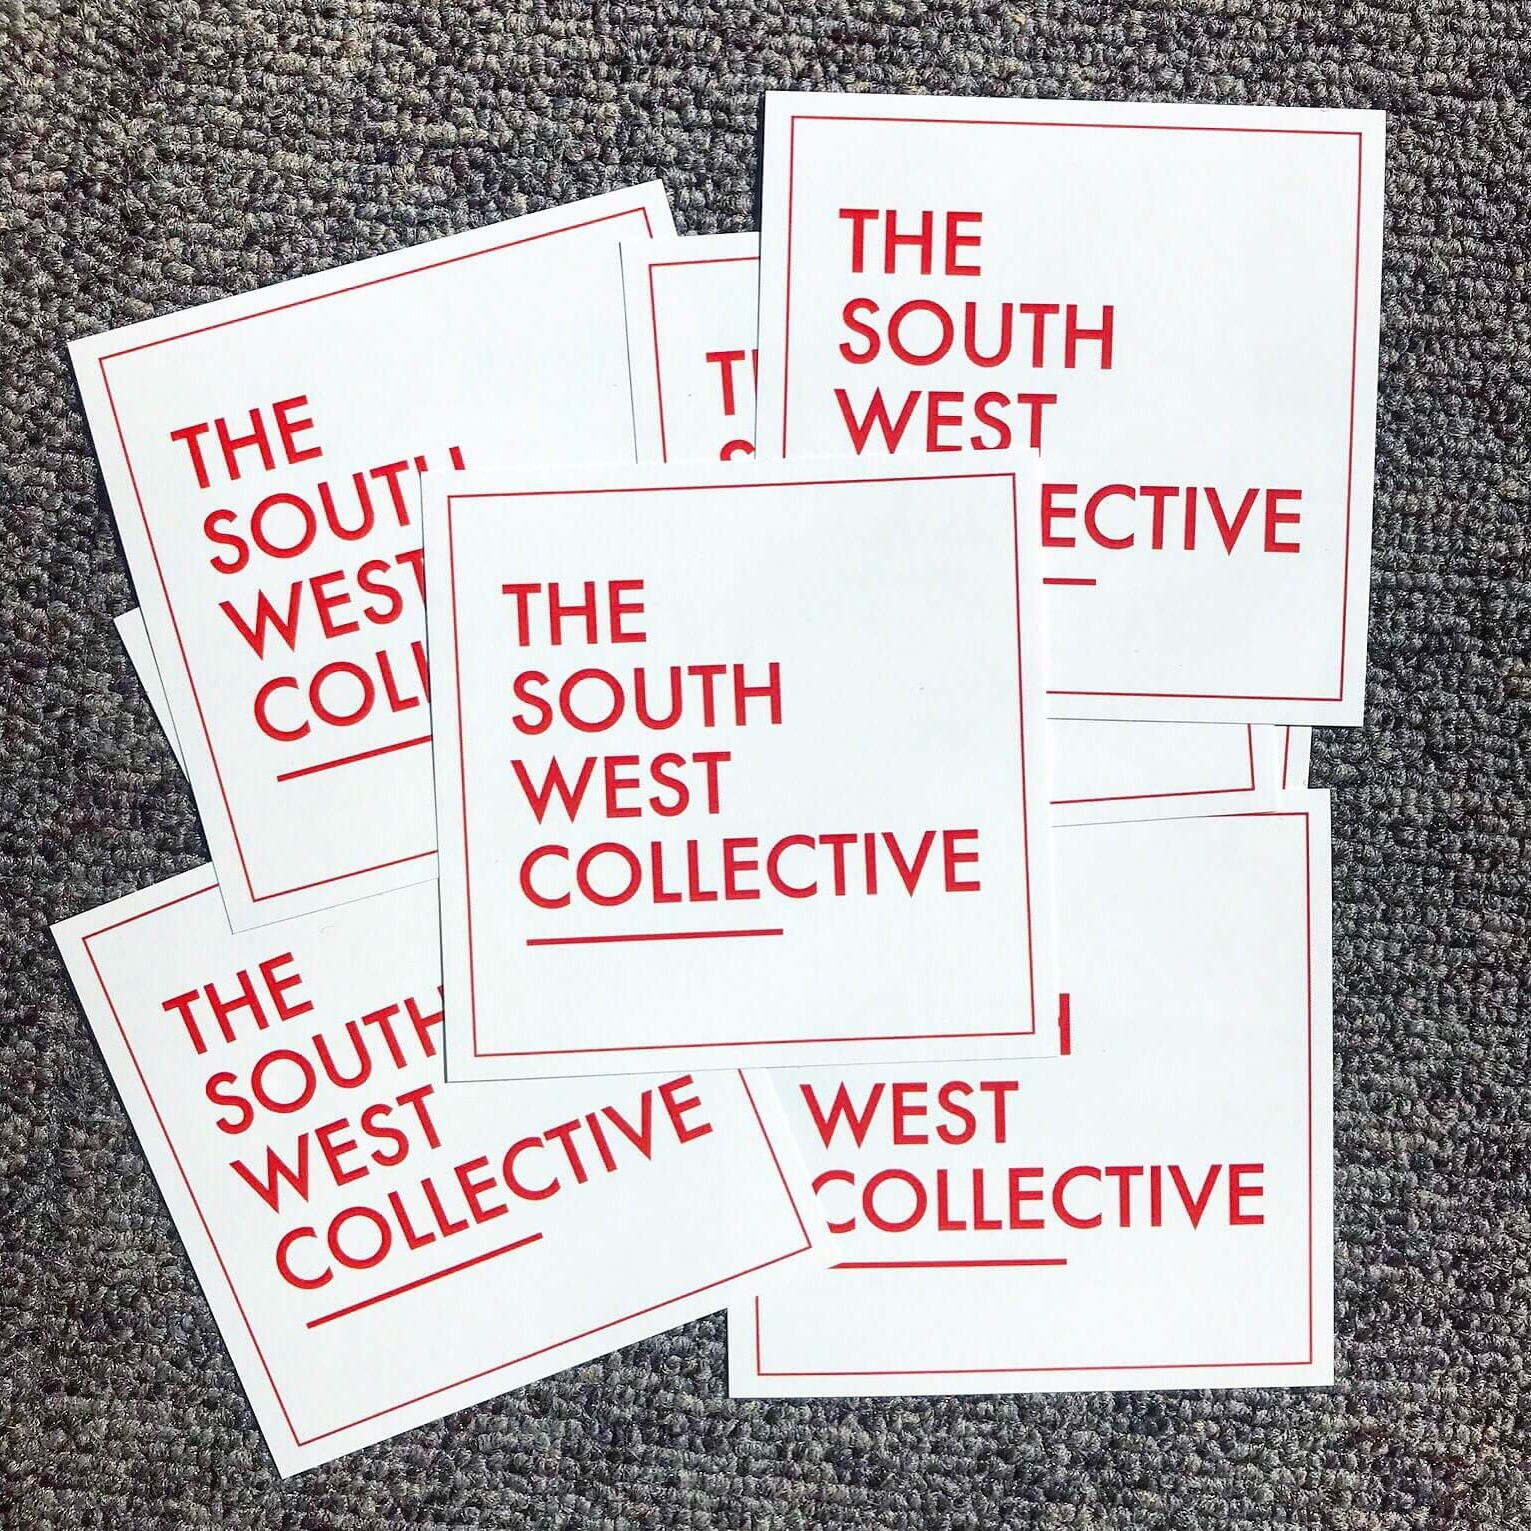 the south west collective stickers on grey background